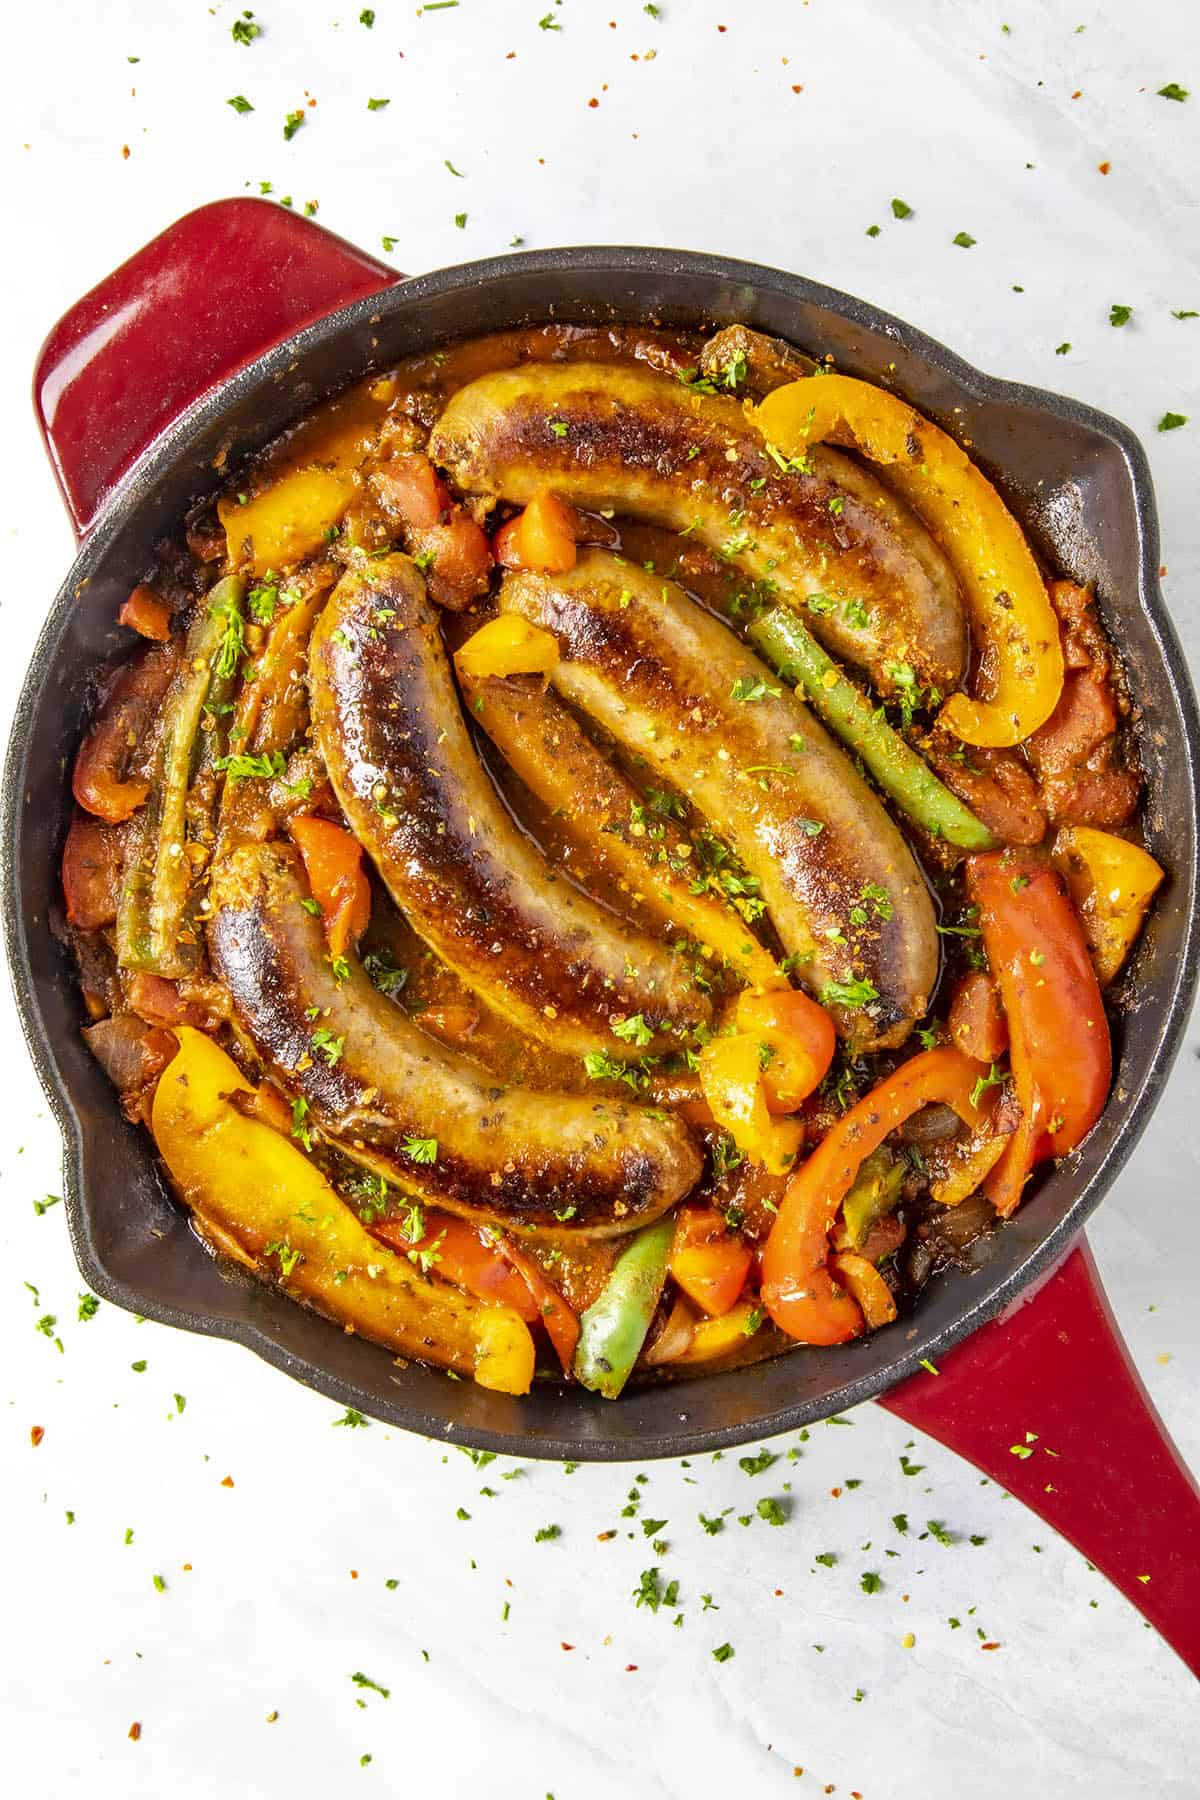 Sausage and Peppers ready to eat straight from the pan